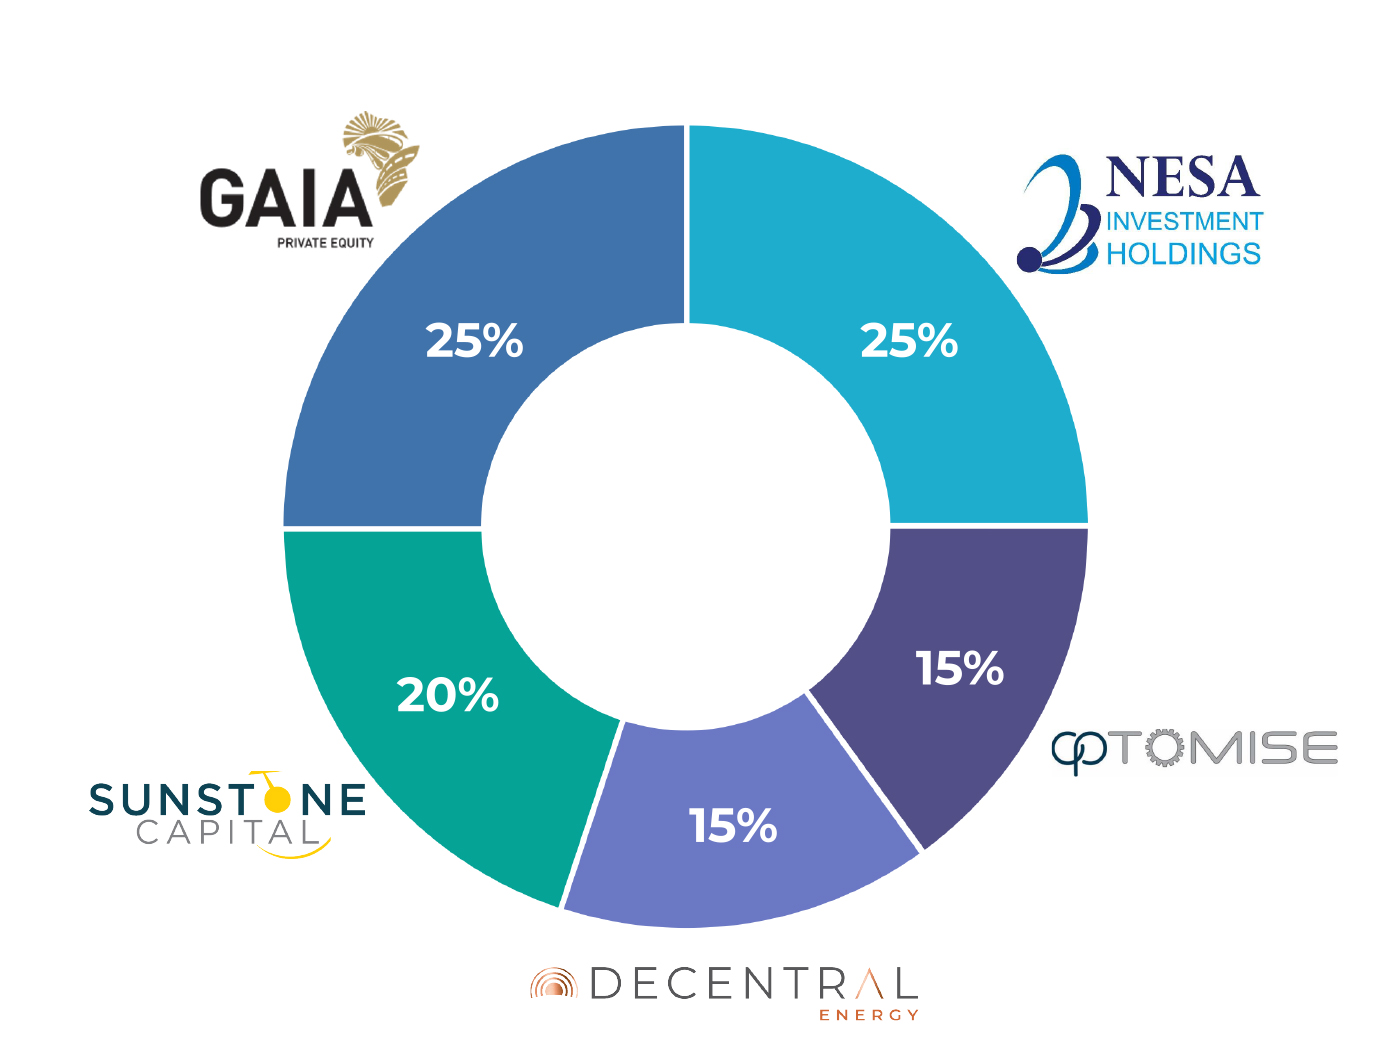 MeTTa Capital - Composition: Holdings as at 28 February 2021